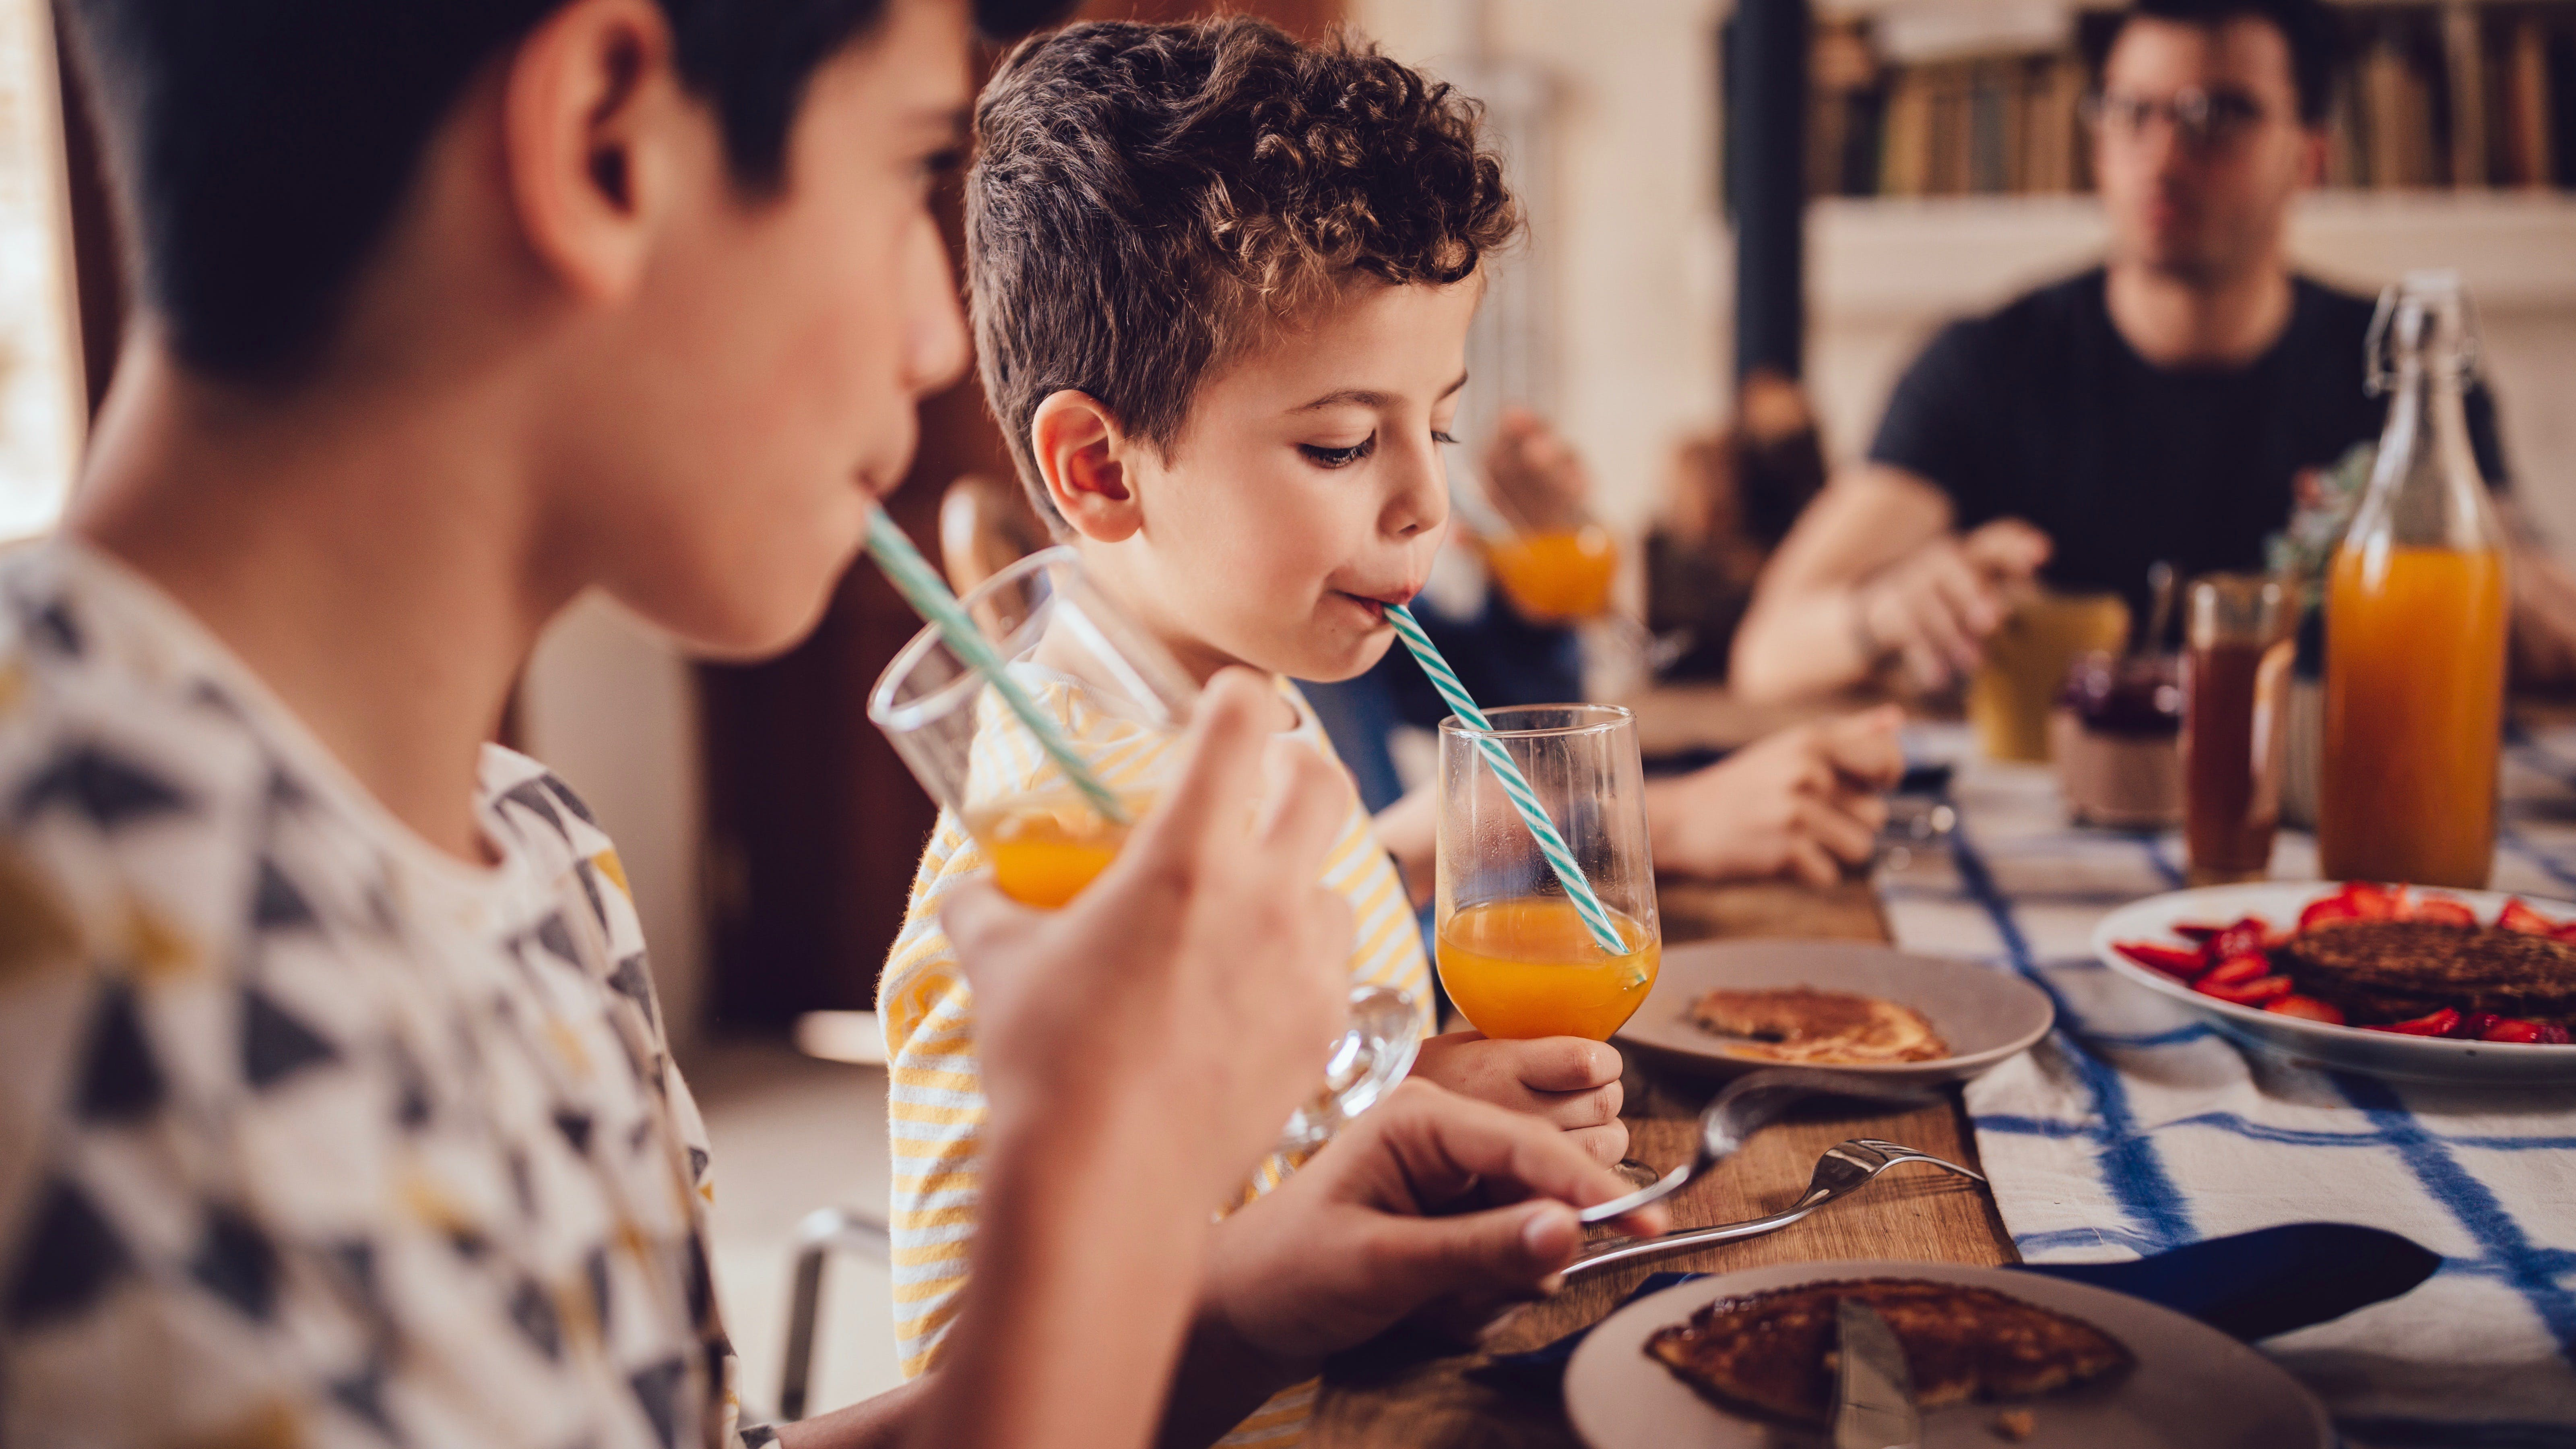 Study finds alarming amounts of heavy metals in fruit juices